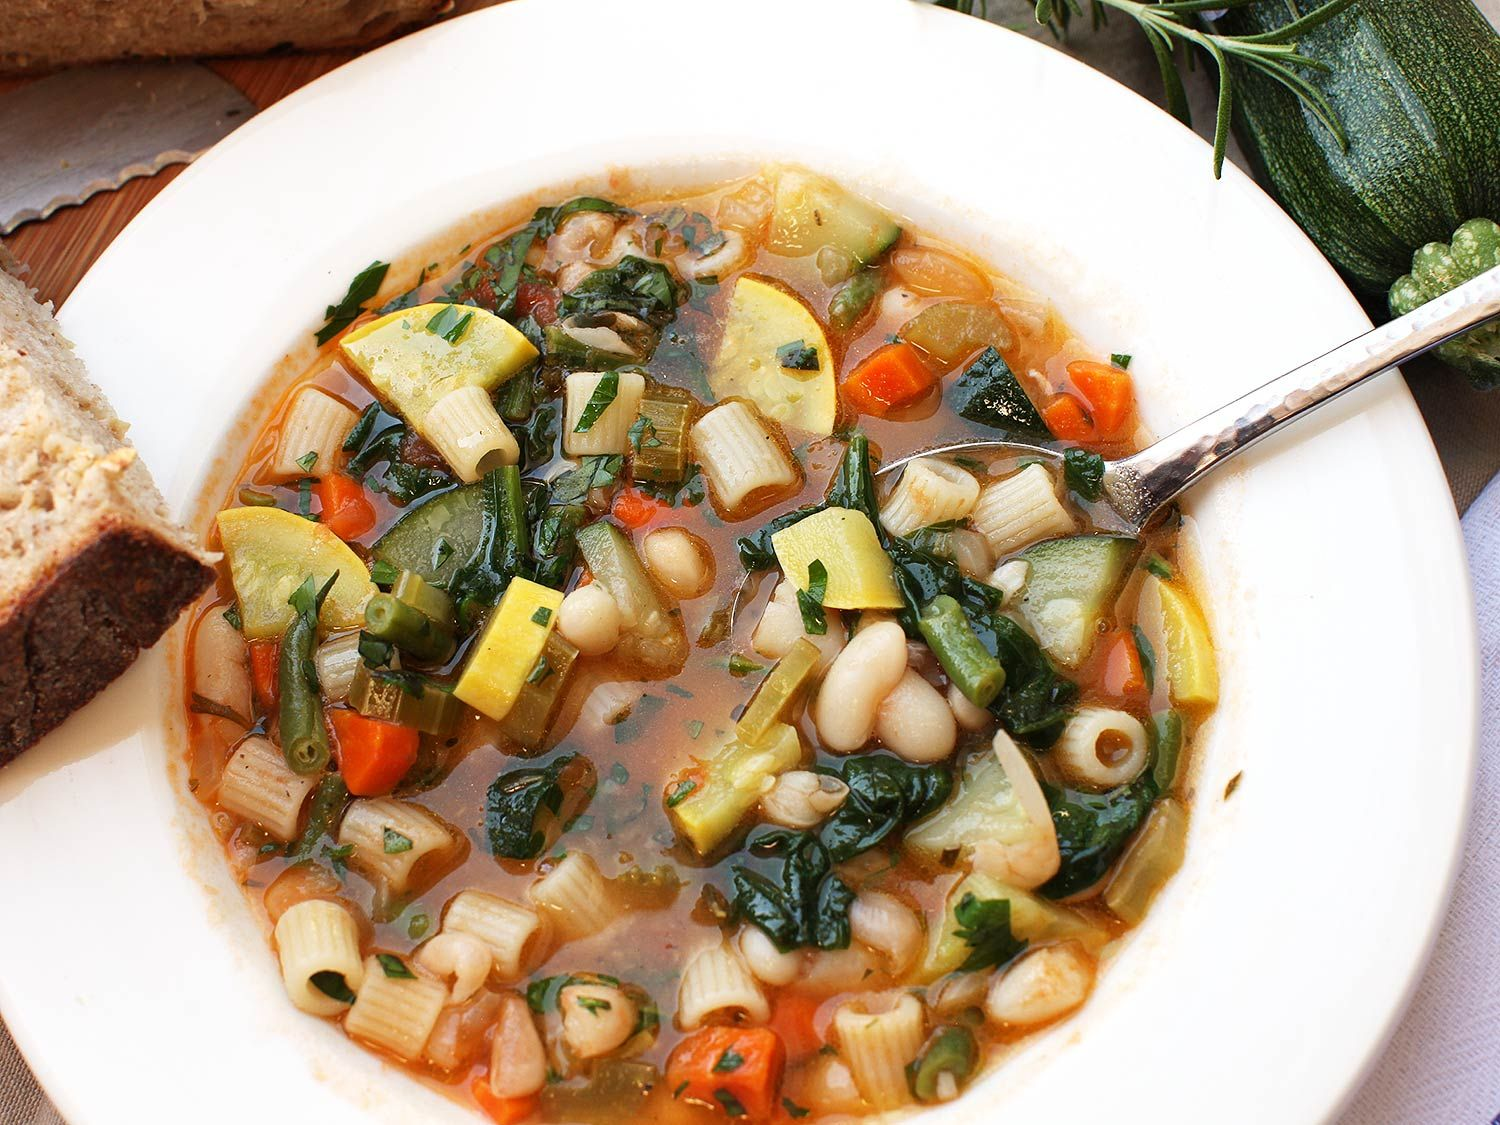 The Best Minestrone Soup | Recipe | Serious eats, Italian soup and ...